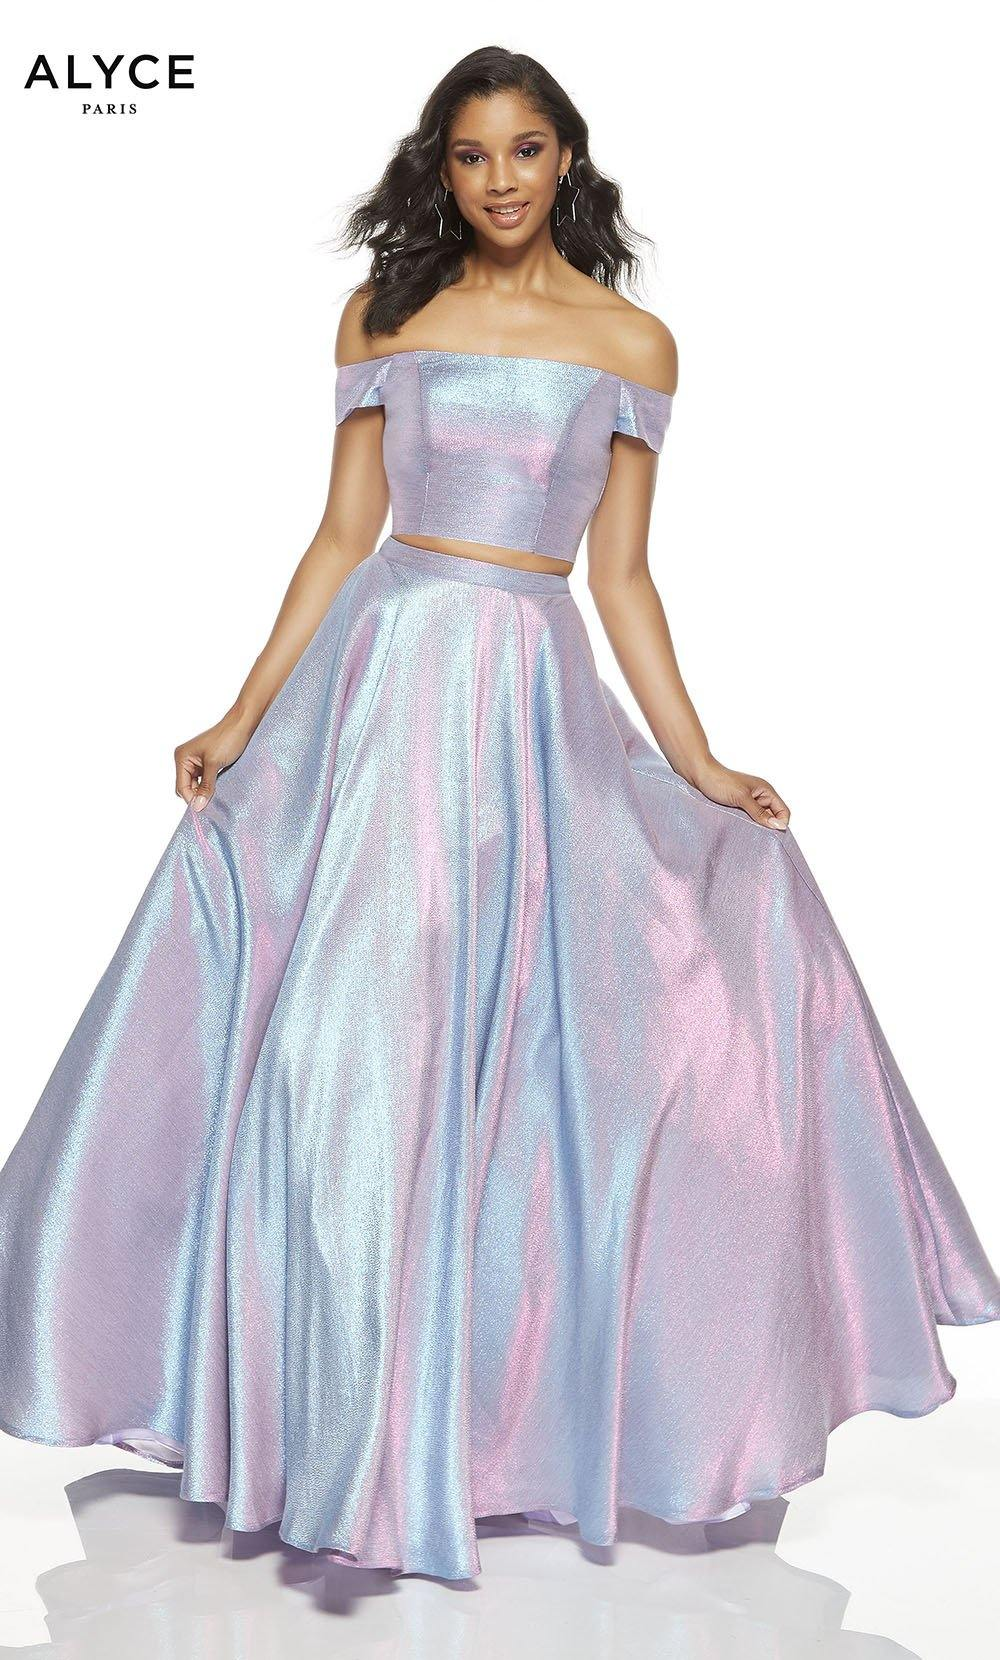 Unicorn (Violet) metallic off the shoulder two piece prom dress